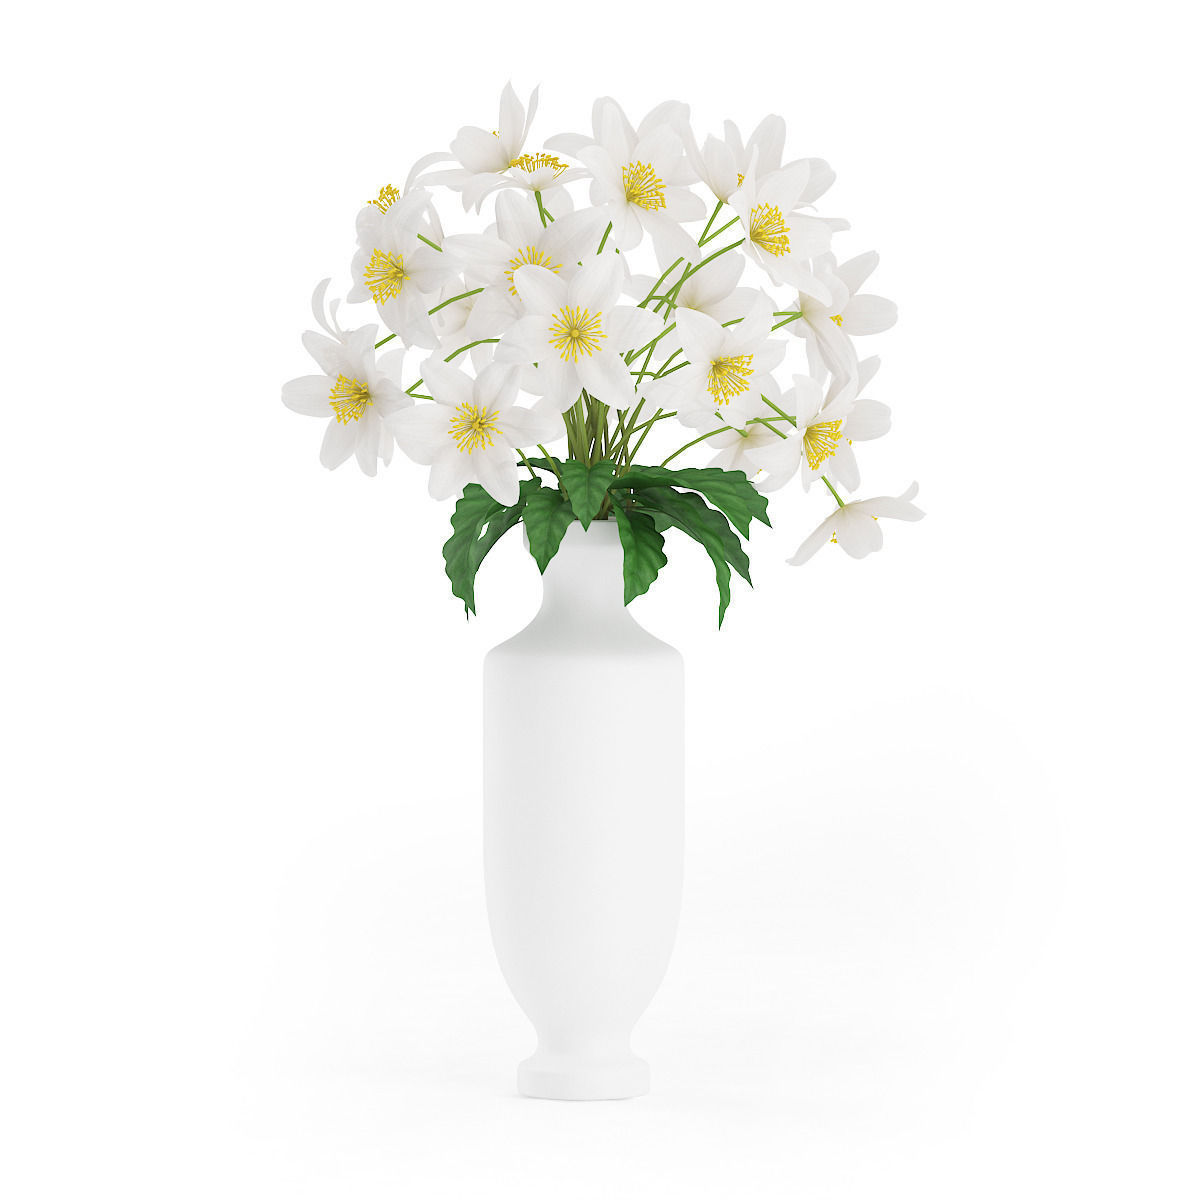 White Flowers In Tall Vase 3d Cgtrader